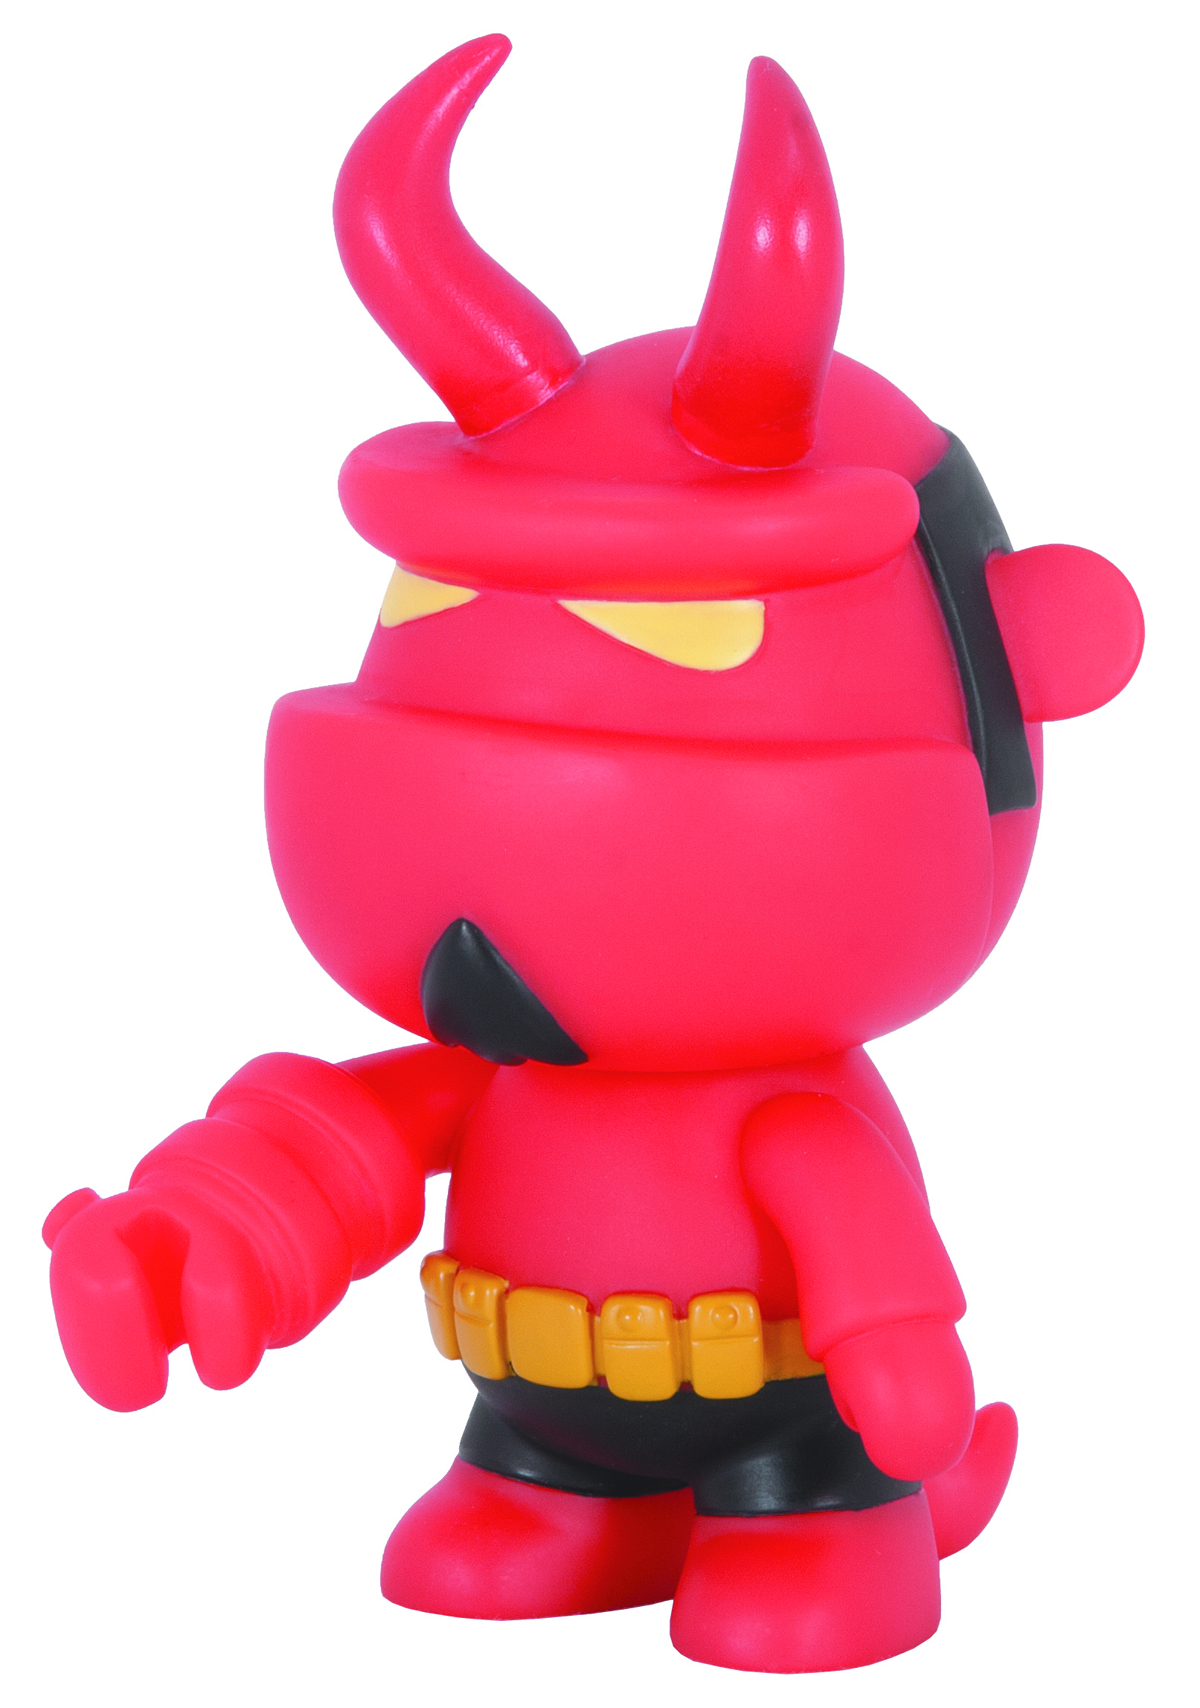 HELLBOY 5 INCH MINI QEE HELLBOY WITH HORNS